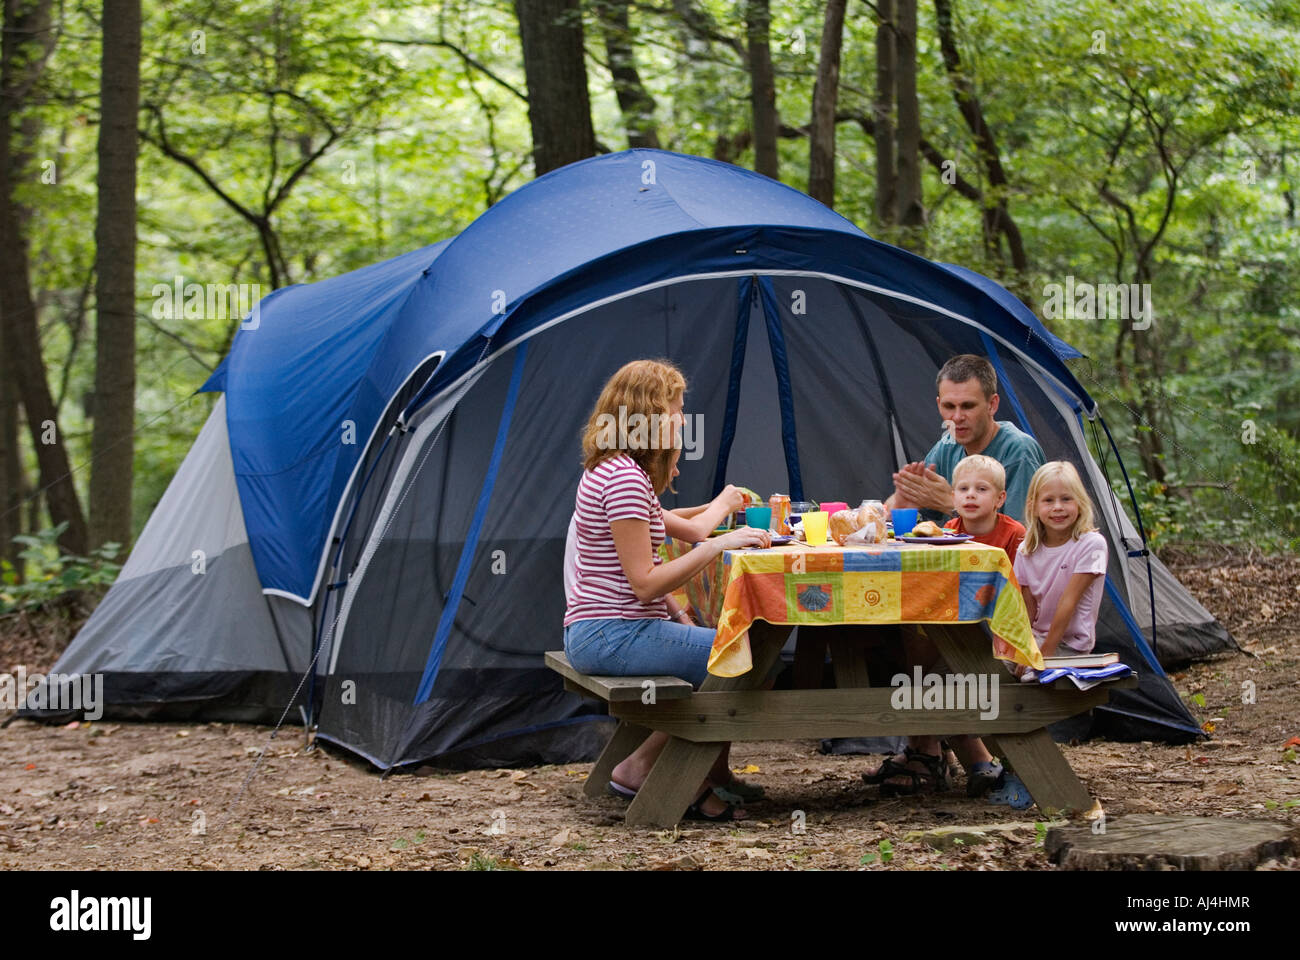 C&ing Family Eating Dinner at Picnic Table with Tent in the Background Ou0027Bannon Woods State Park Indiana  sc 1 st  Alamy & Camping Family Eating Dinner at Picnic Table with Tent in the ...